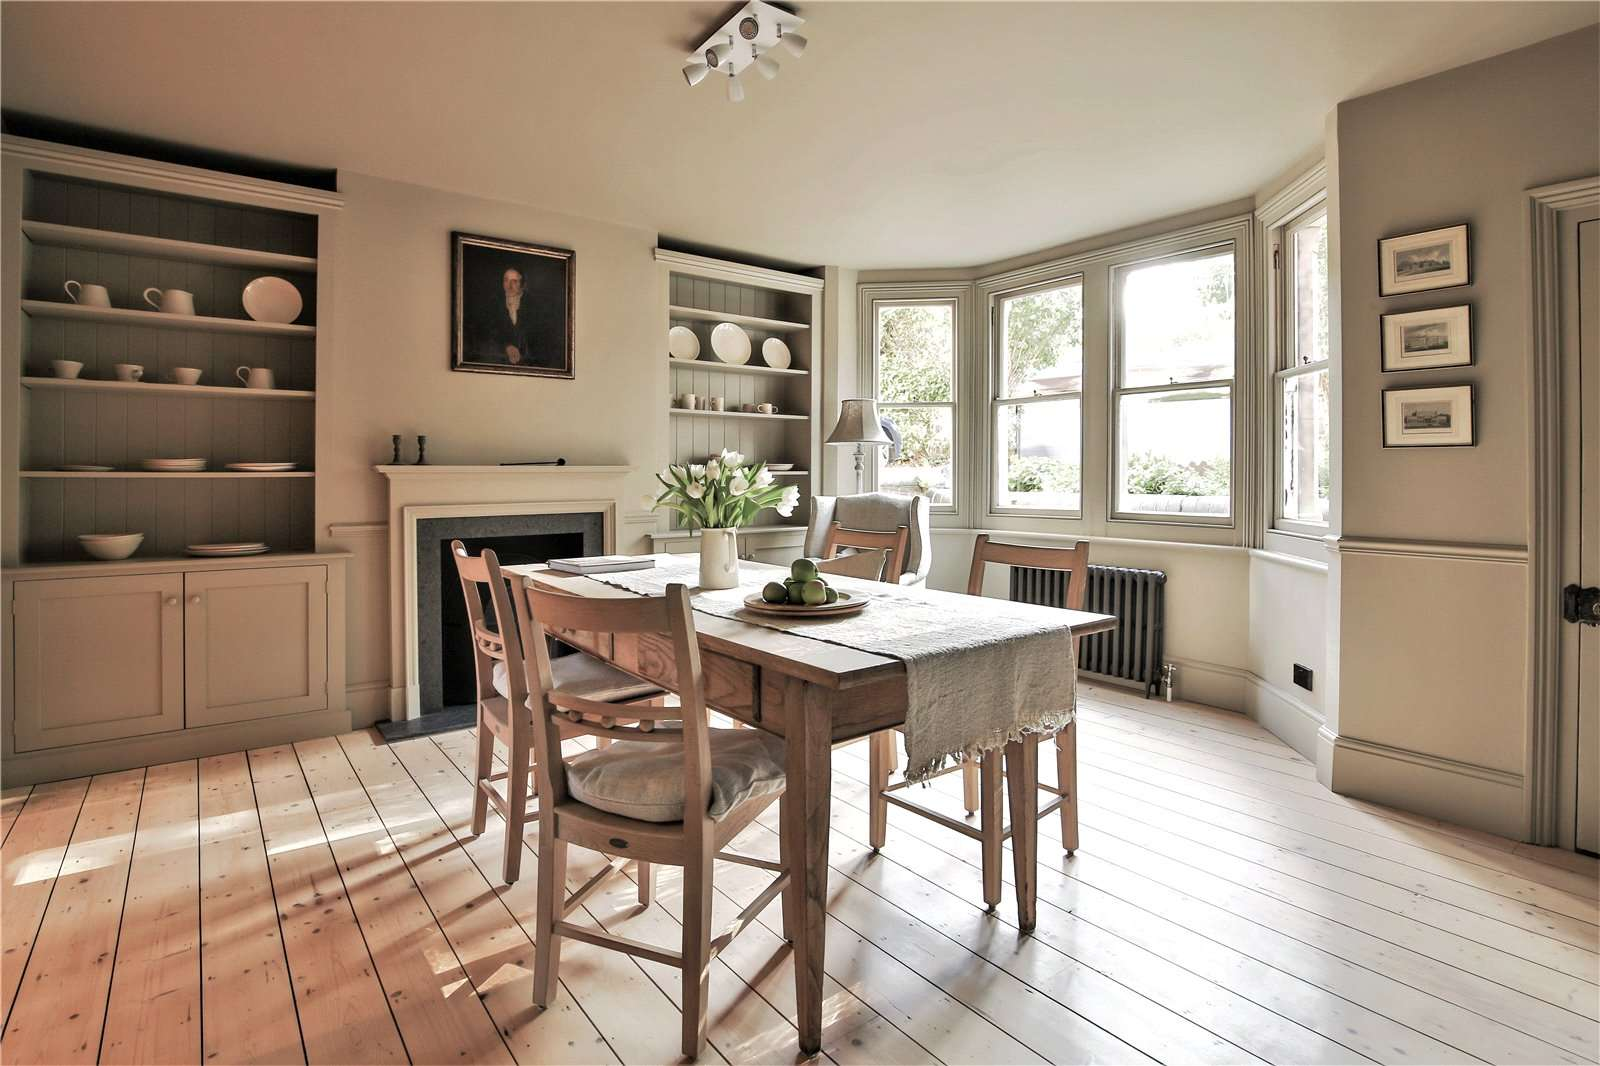 An elegantly-proportioned Victorian house on Woodstock Road in Oxford - Image Gallery 05 - Dining Room